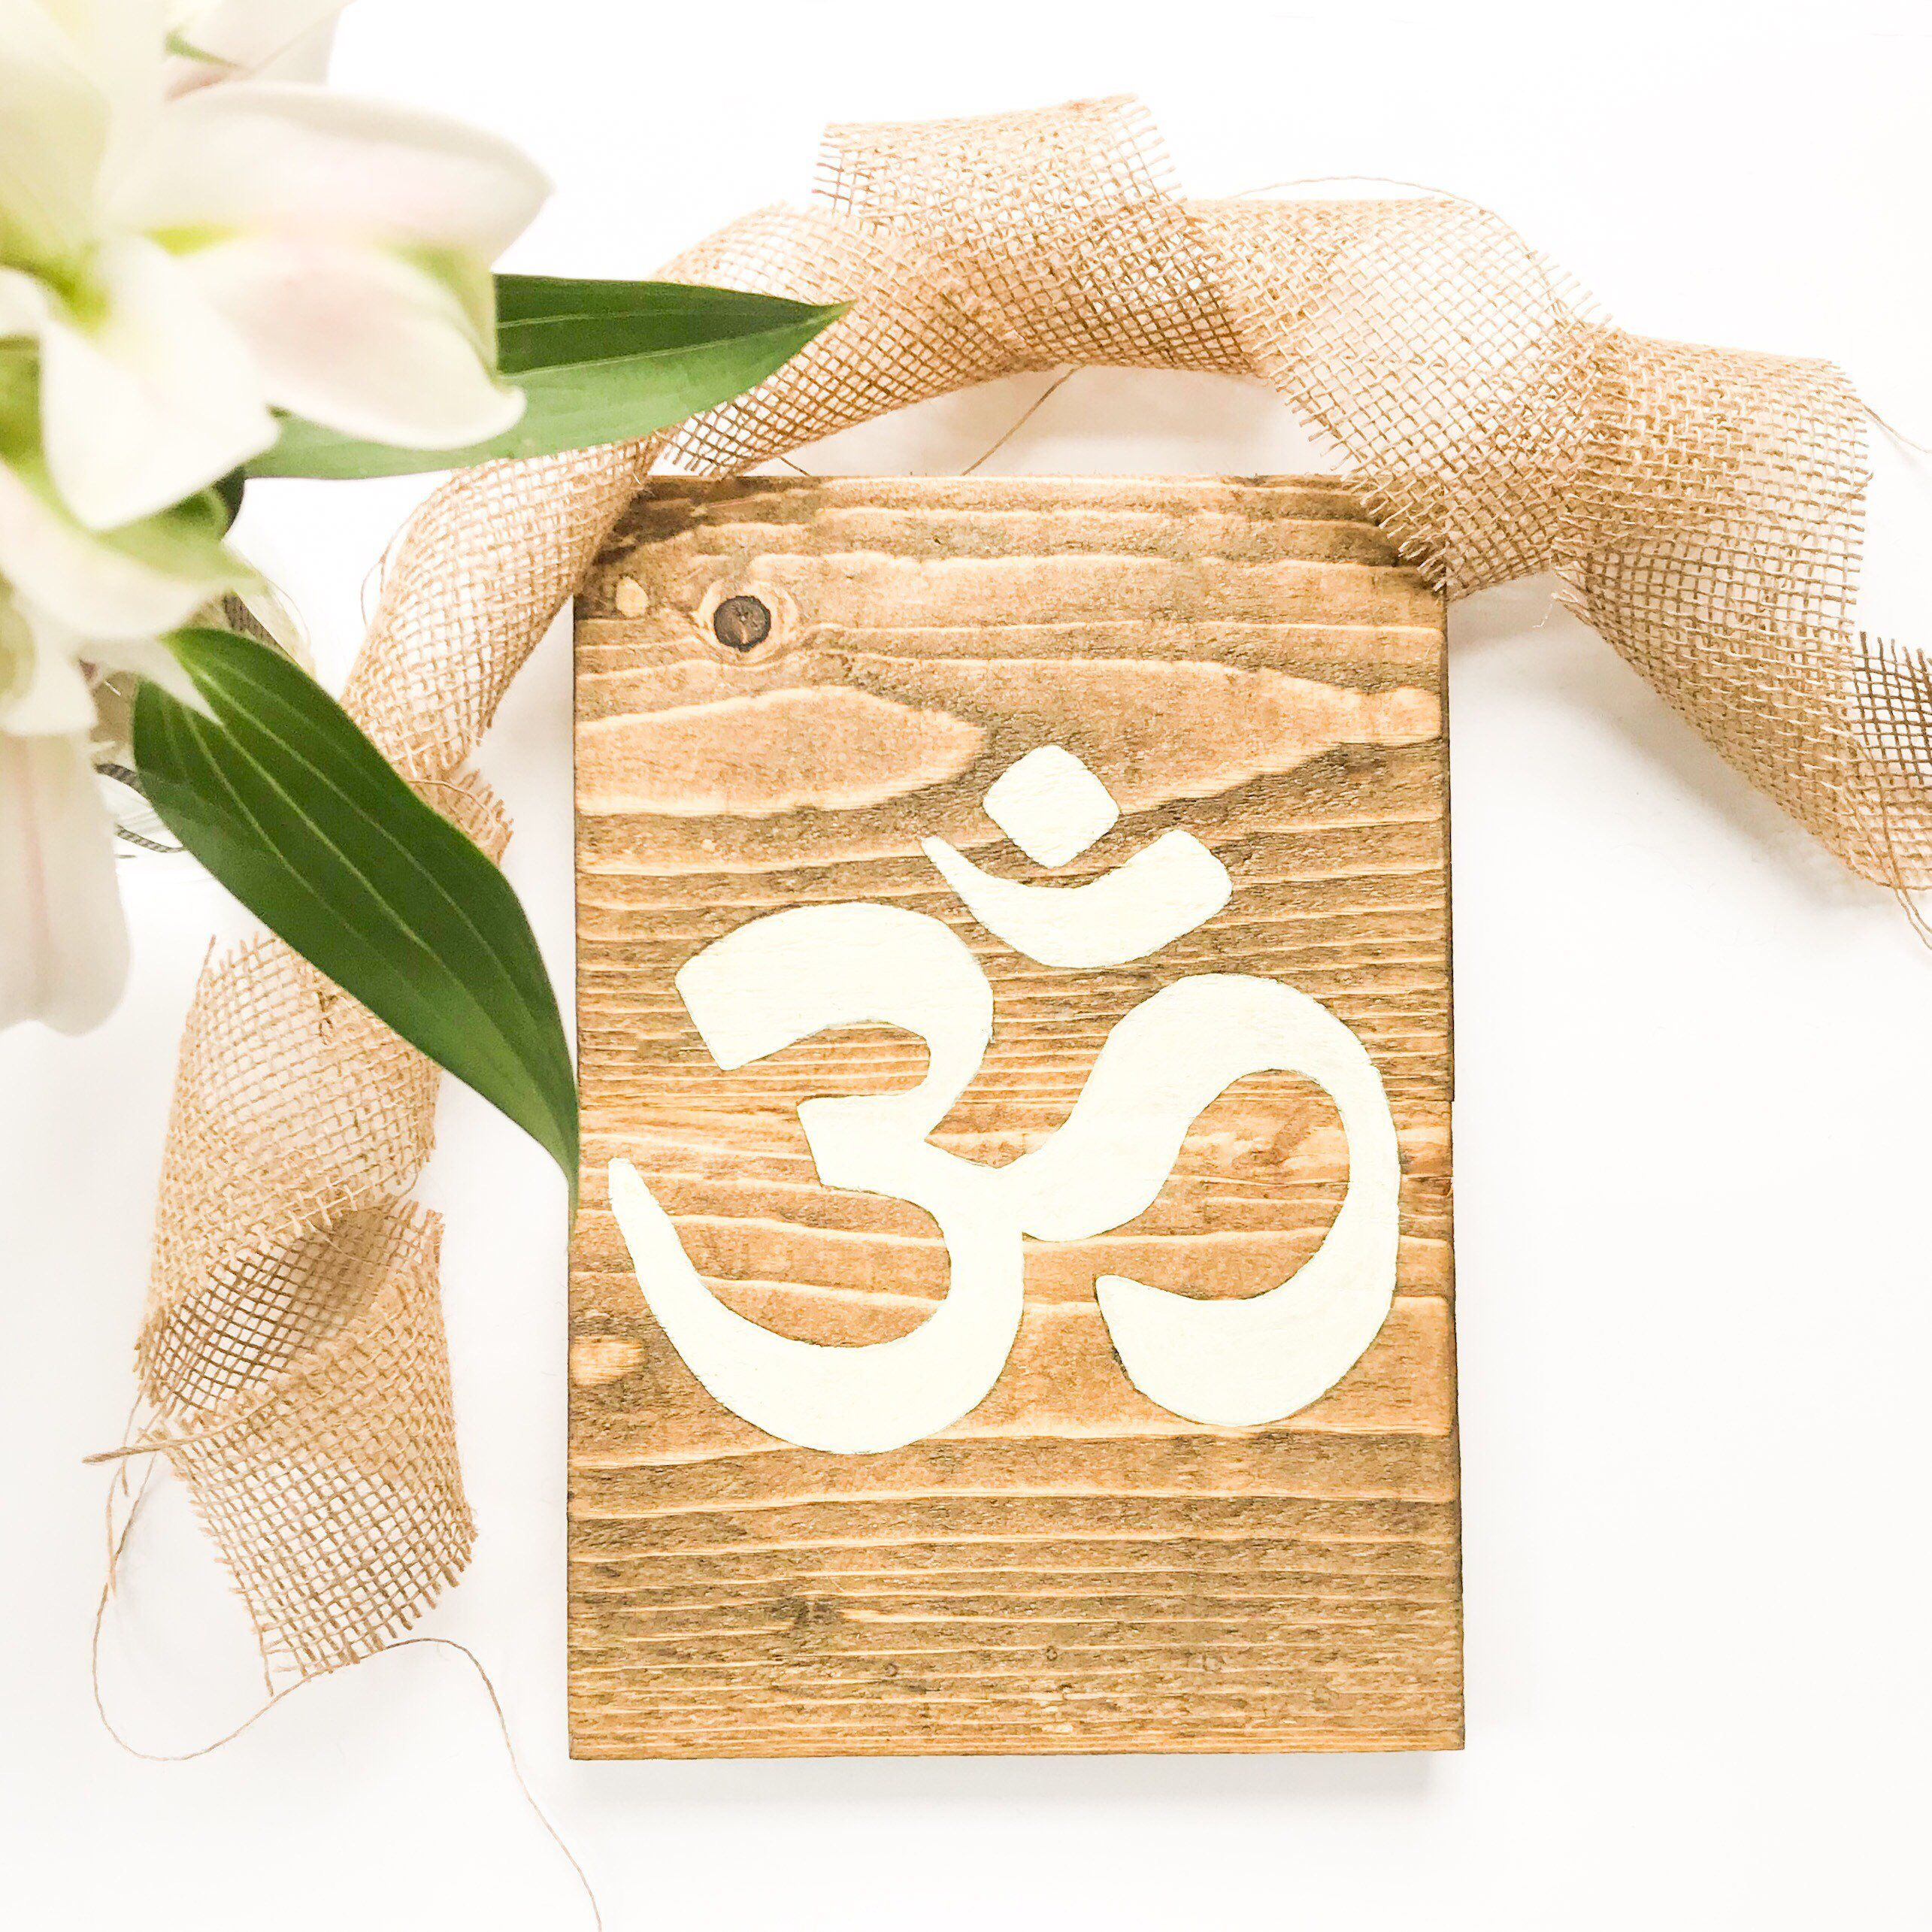 Om symbol wood sign Rustic wooden sign Handmade Buddha sign ...